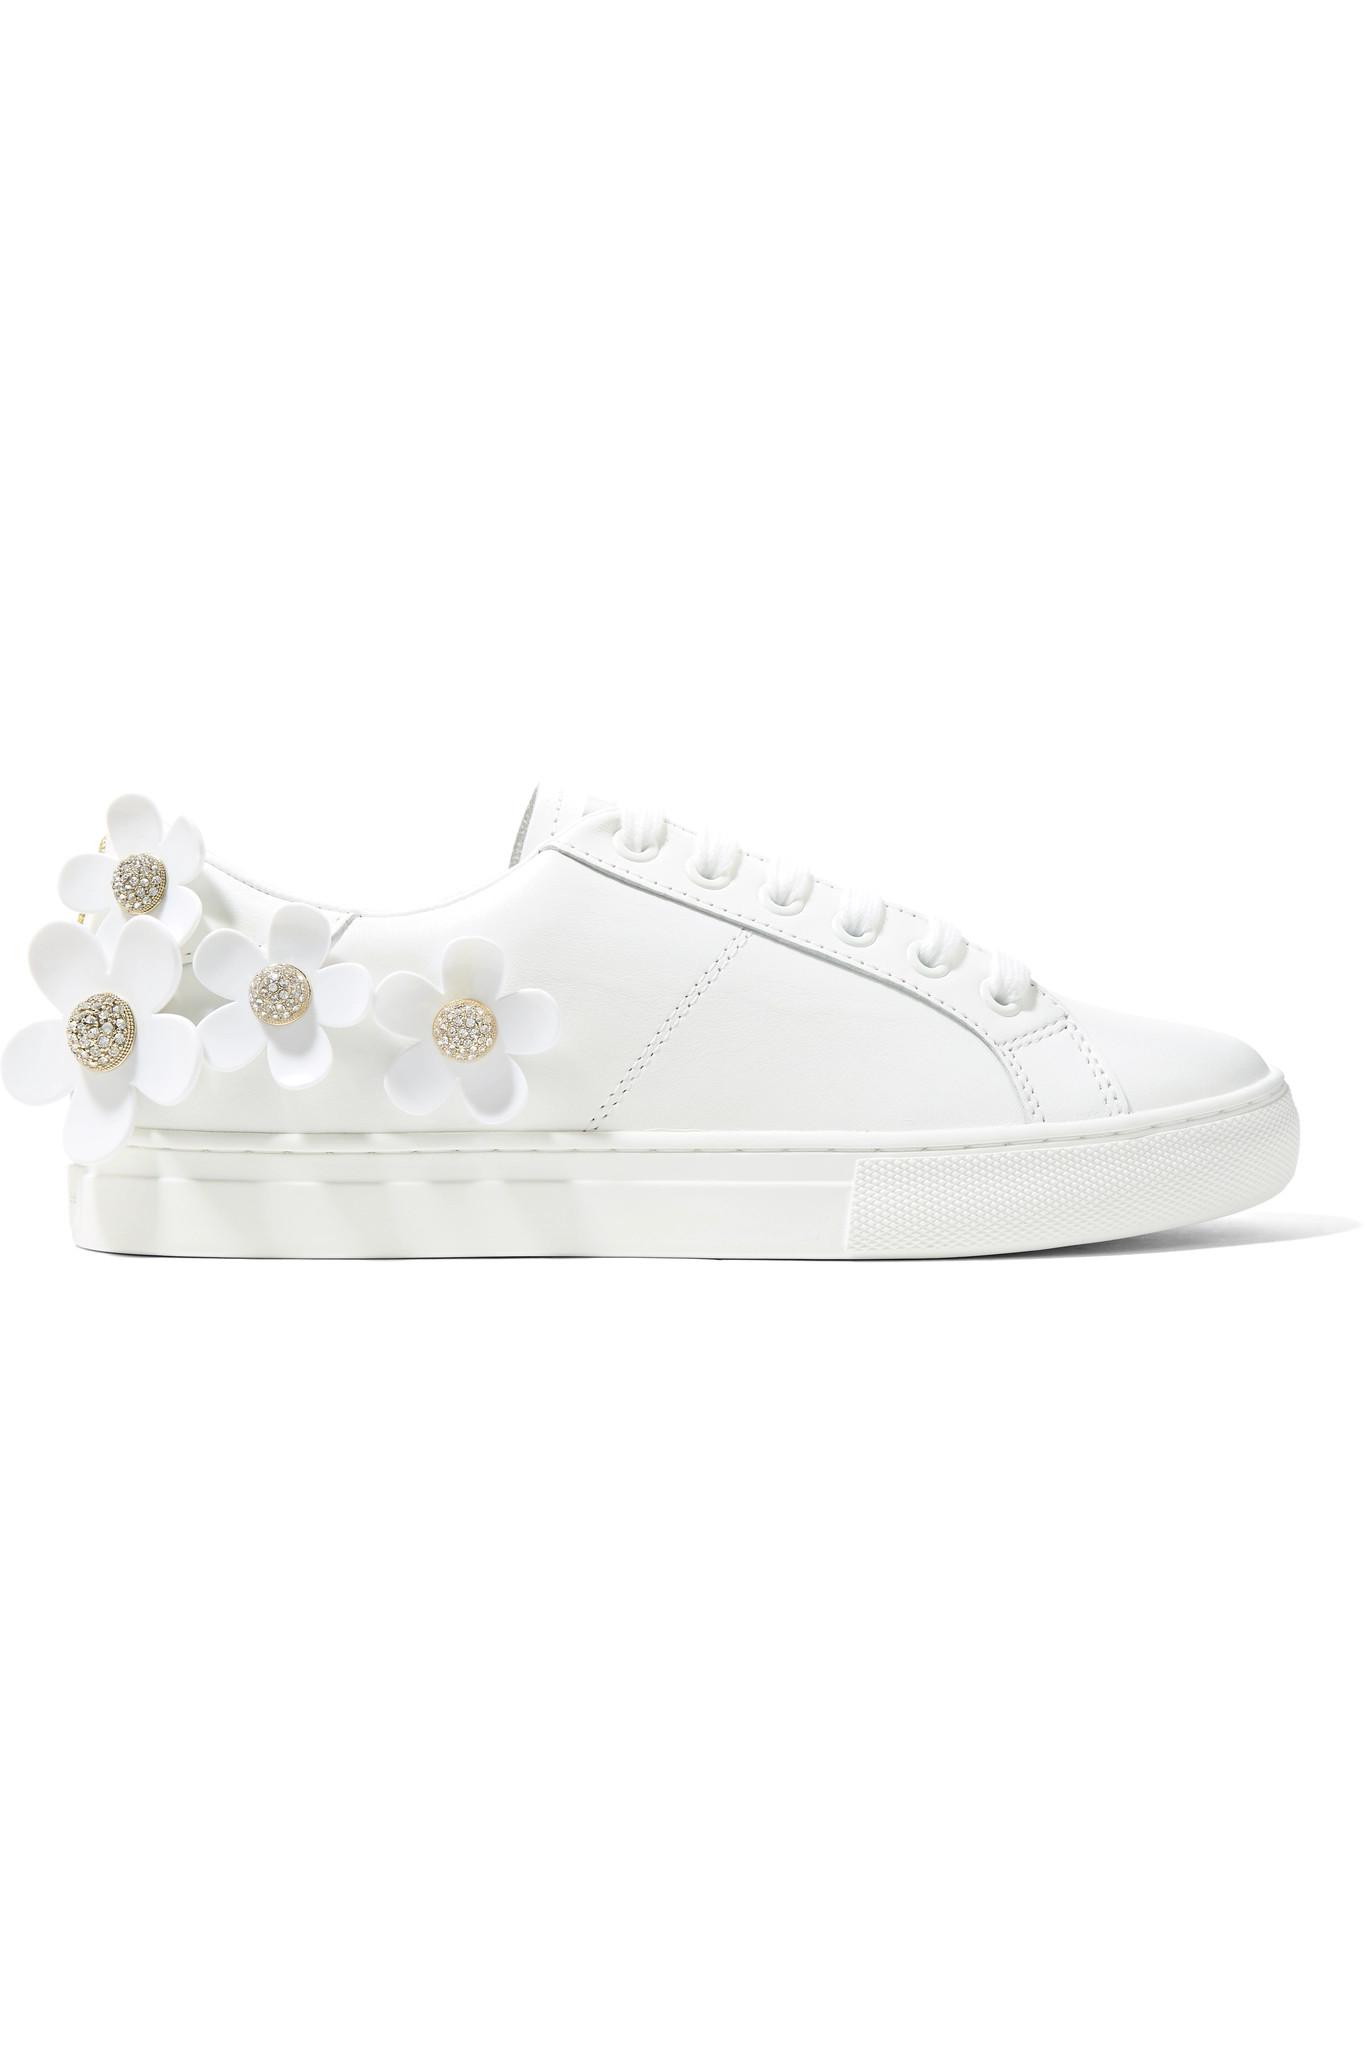 Marc Jacobs Daisy Empire sneakers Sale Exclusive 3vHDRmlz3z